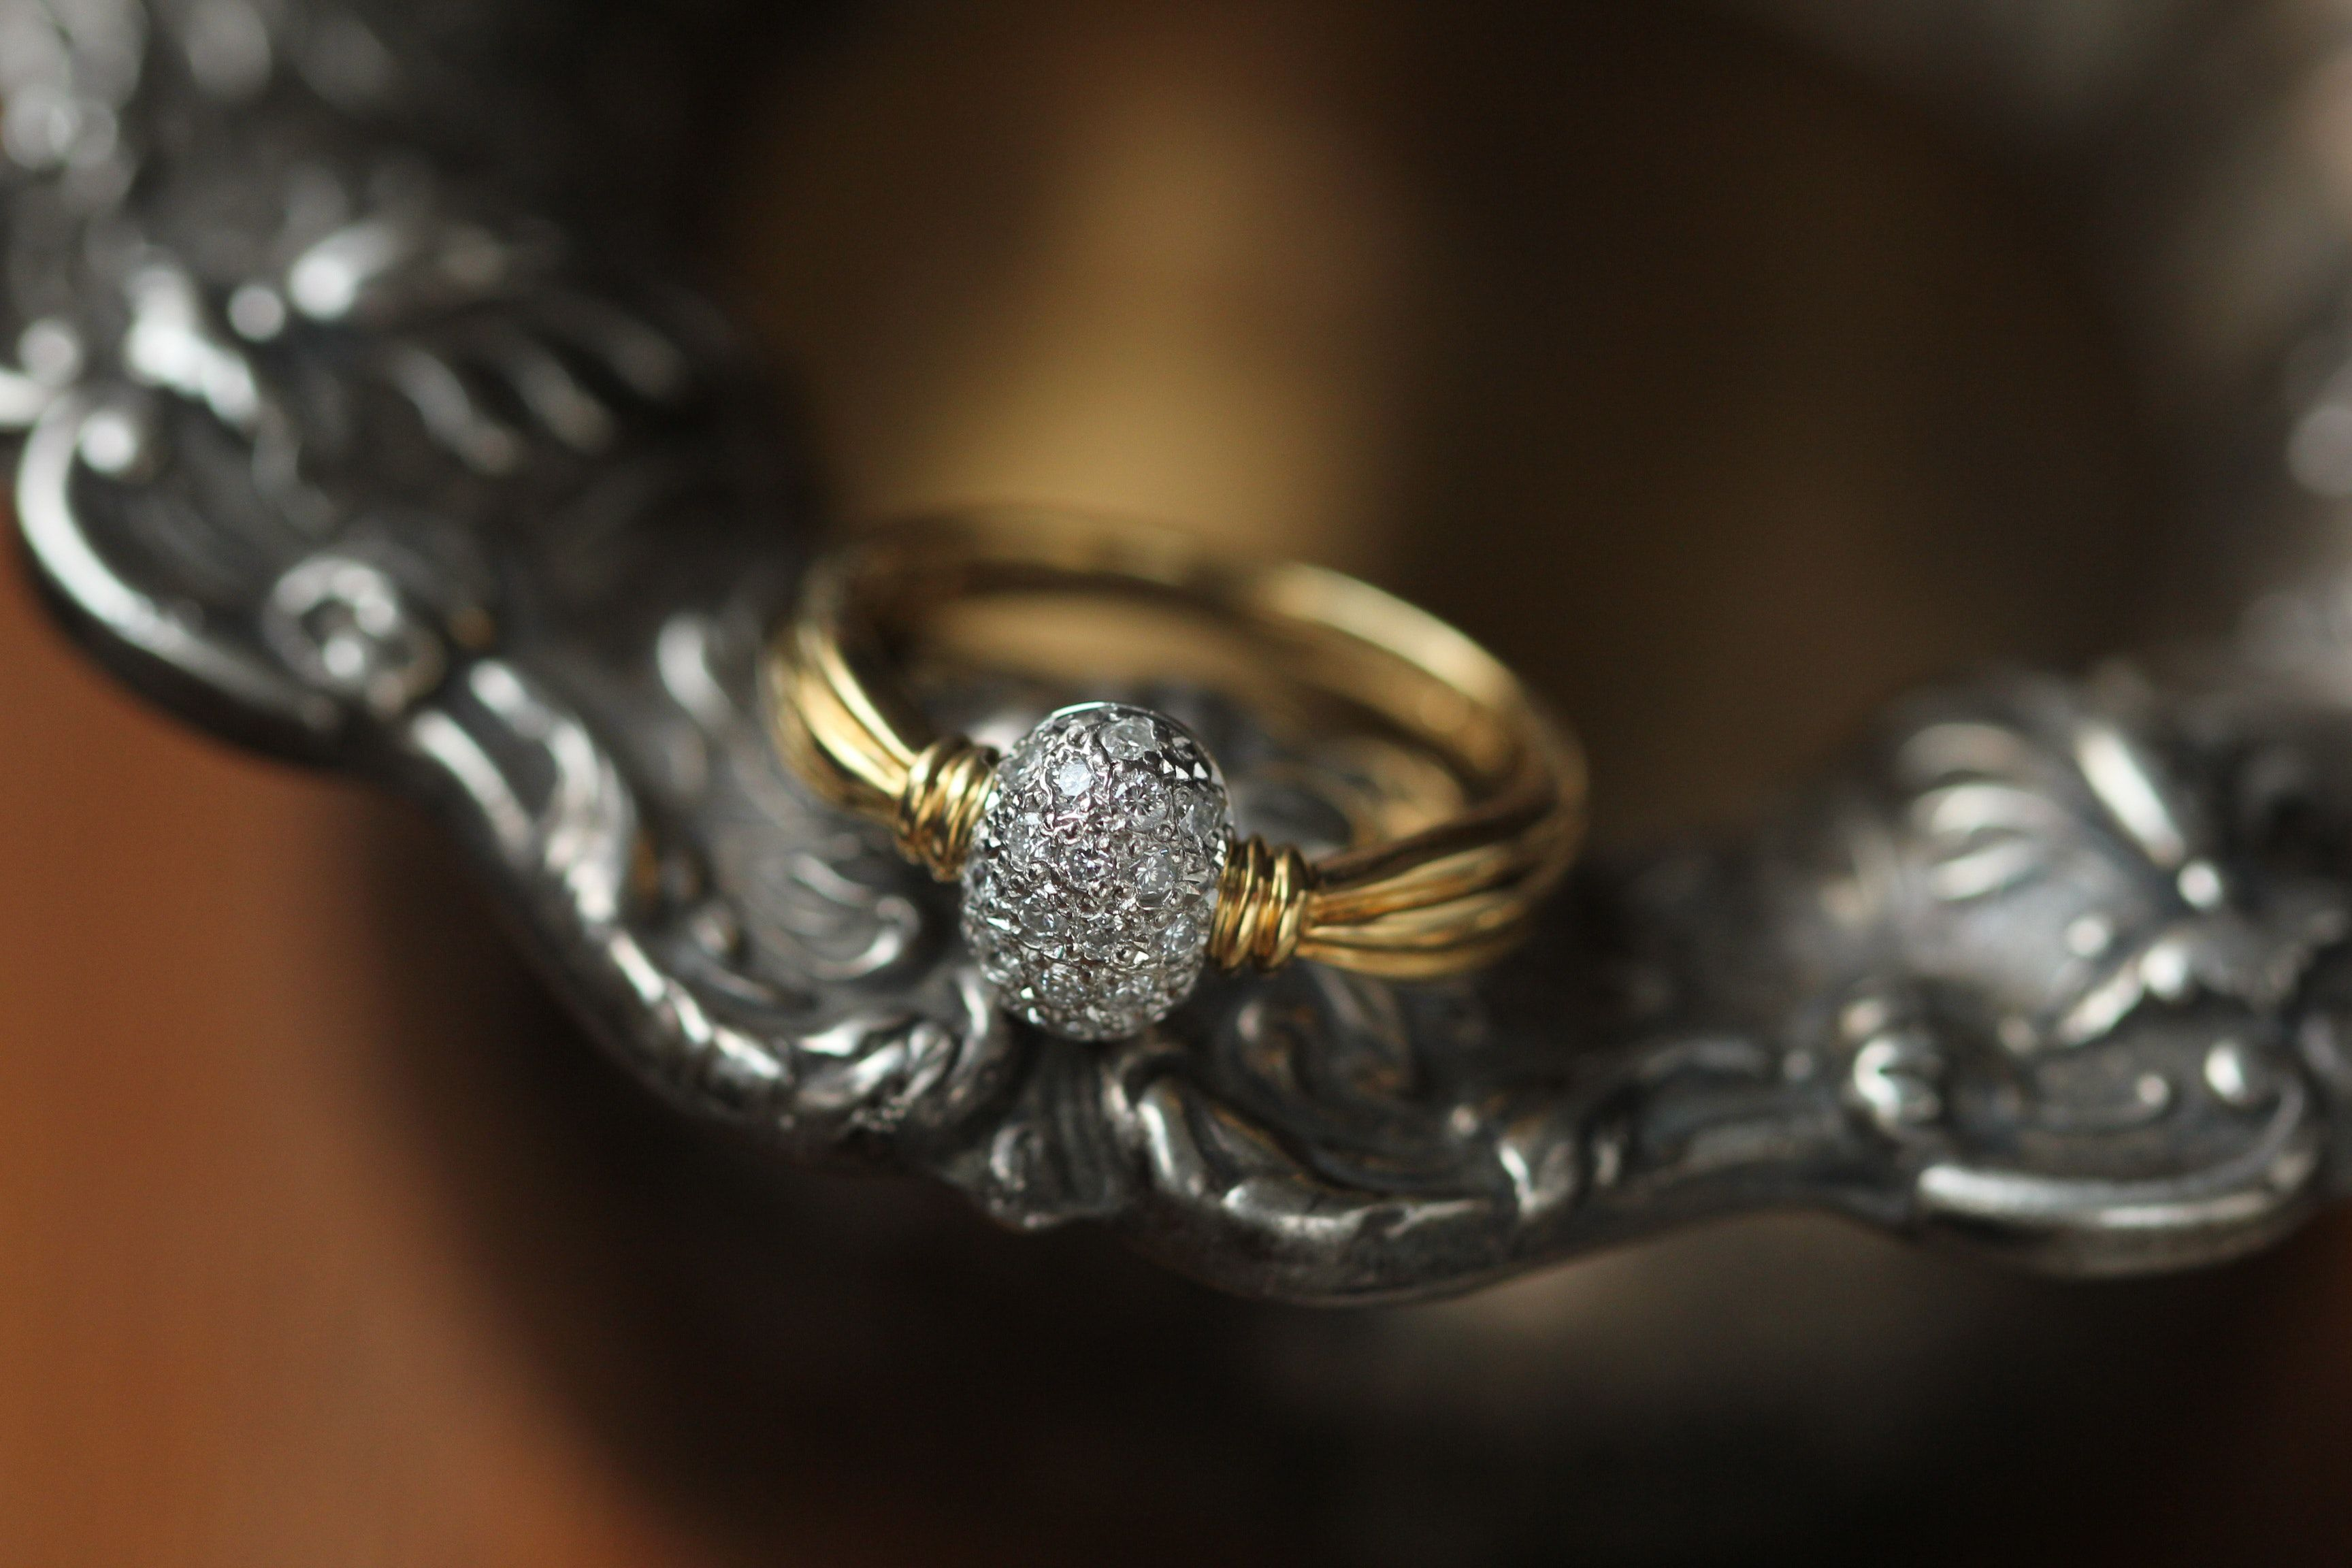 Unusual Gold Ring in 2020 Fashion rings, Personalized